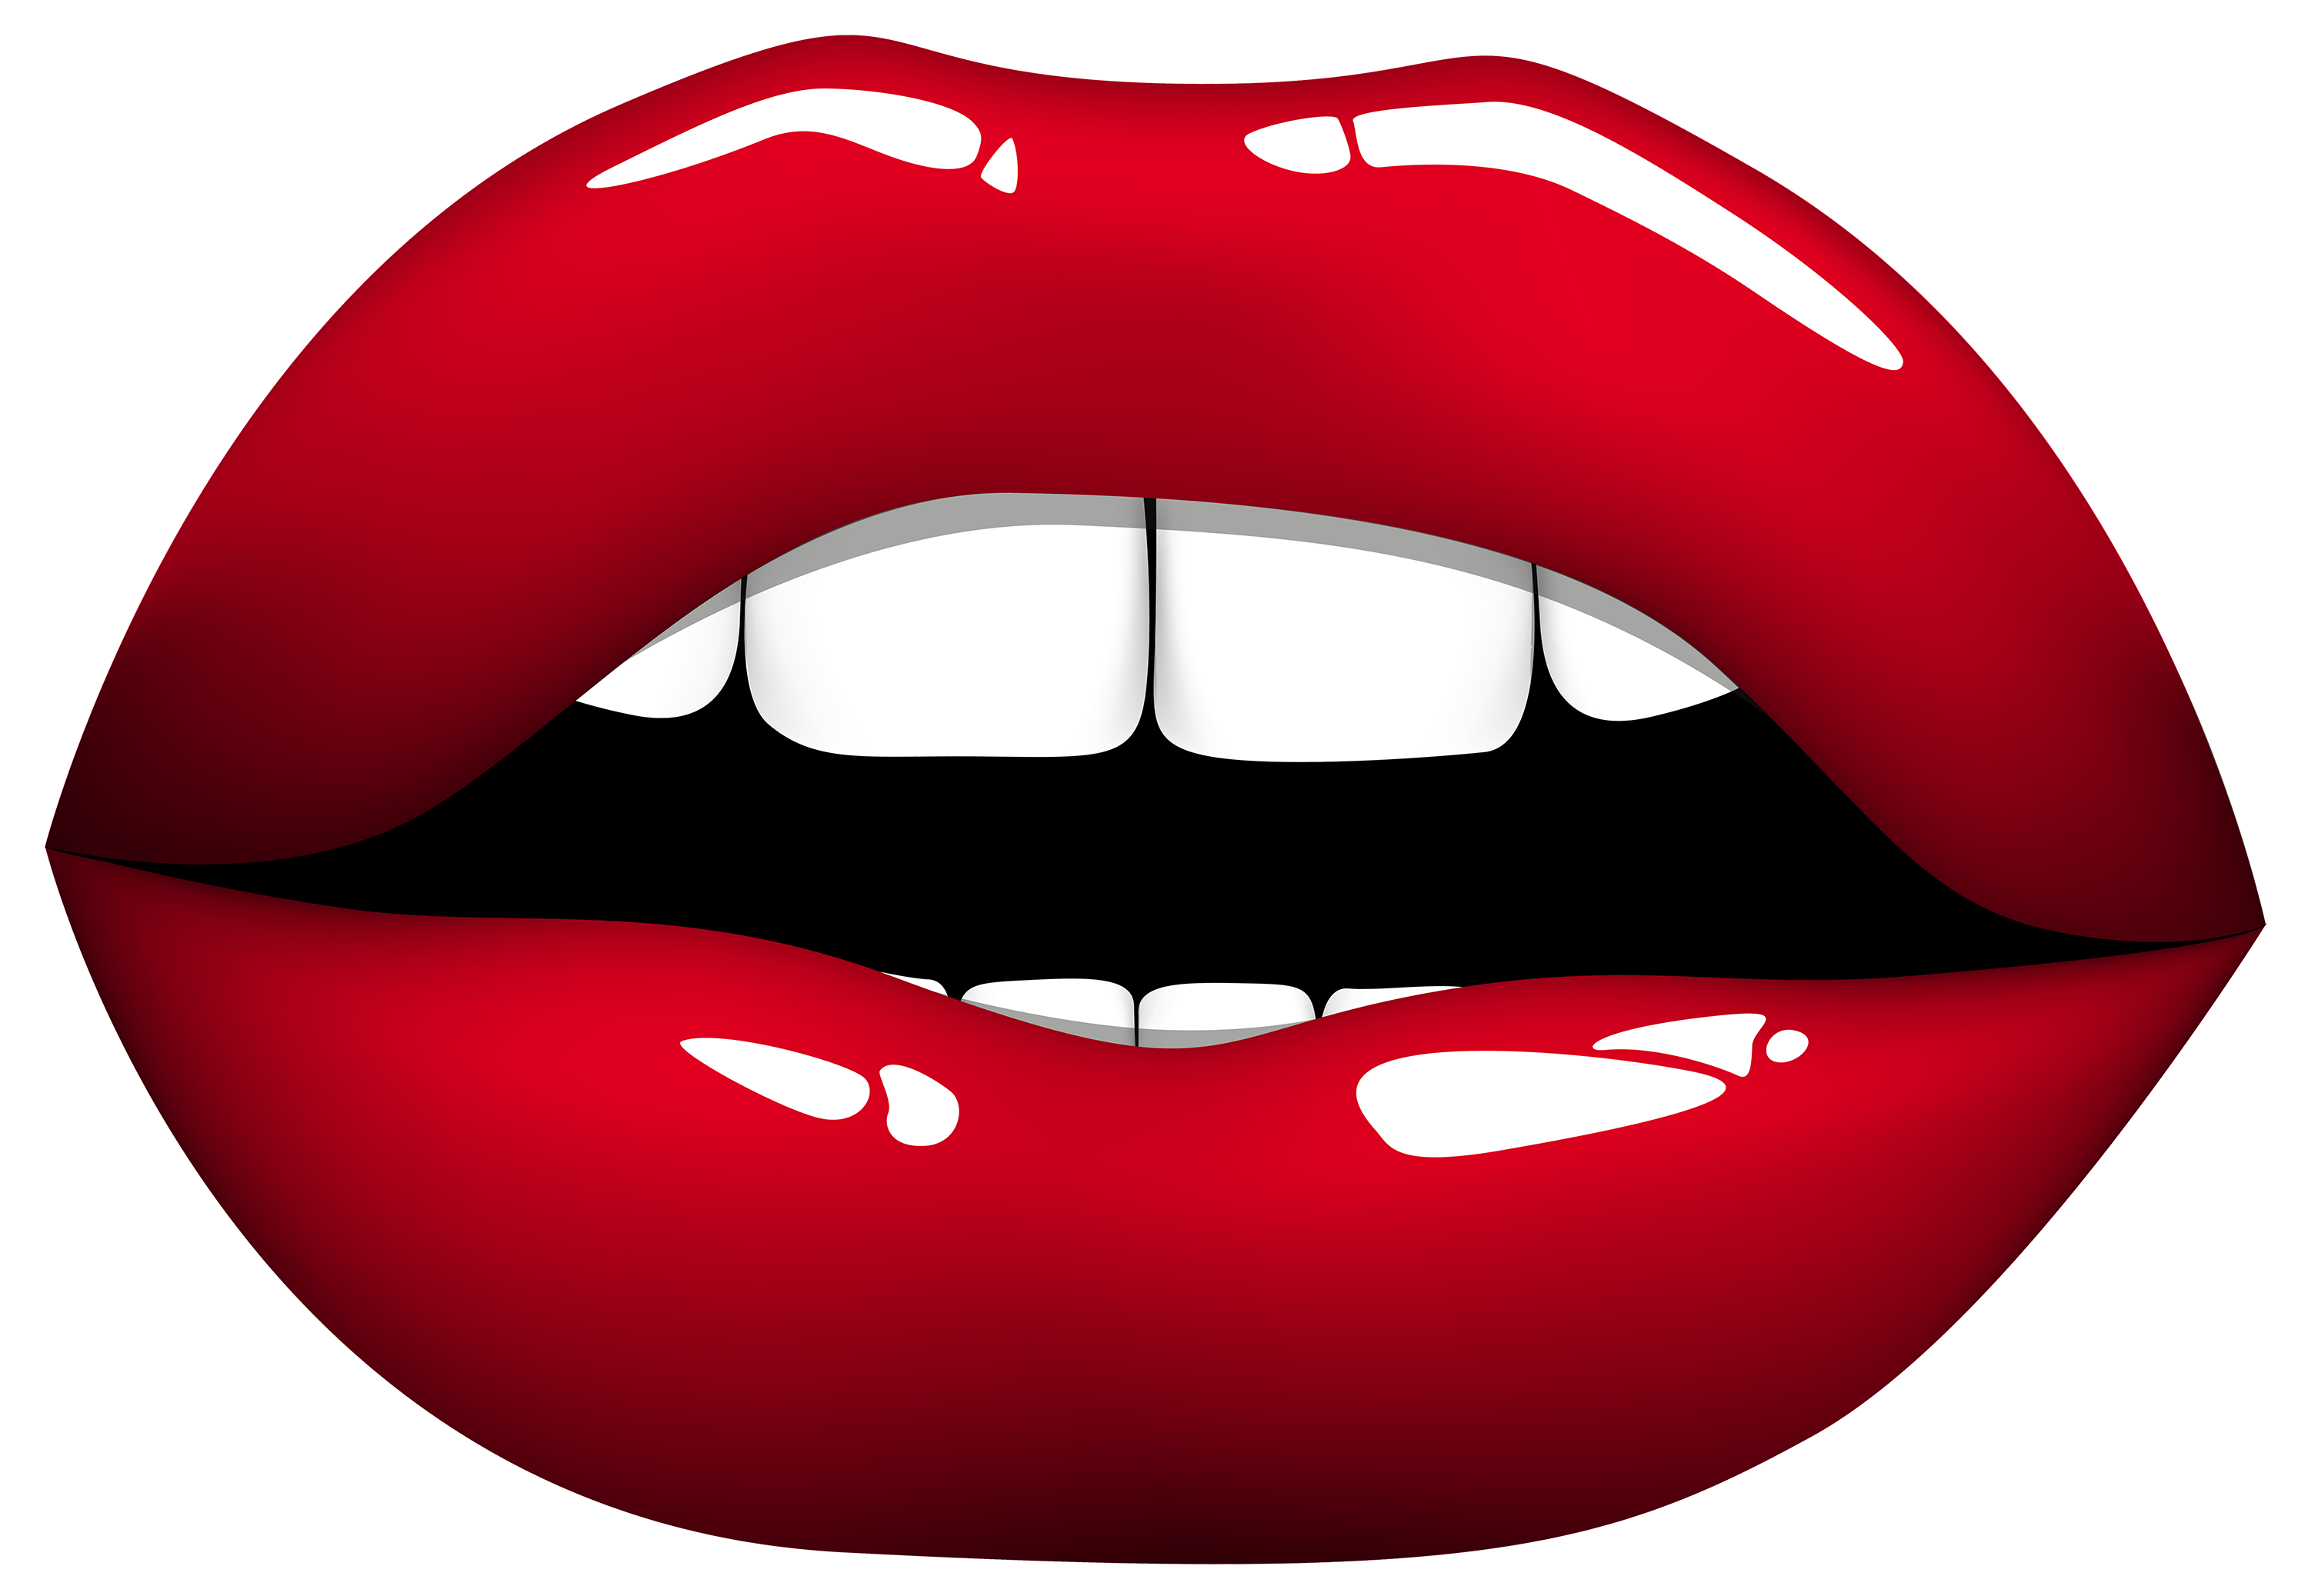 Red Lips Clipart & Red Lips Clip Art Images.